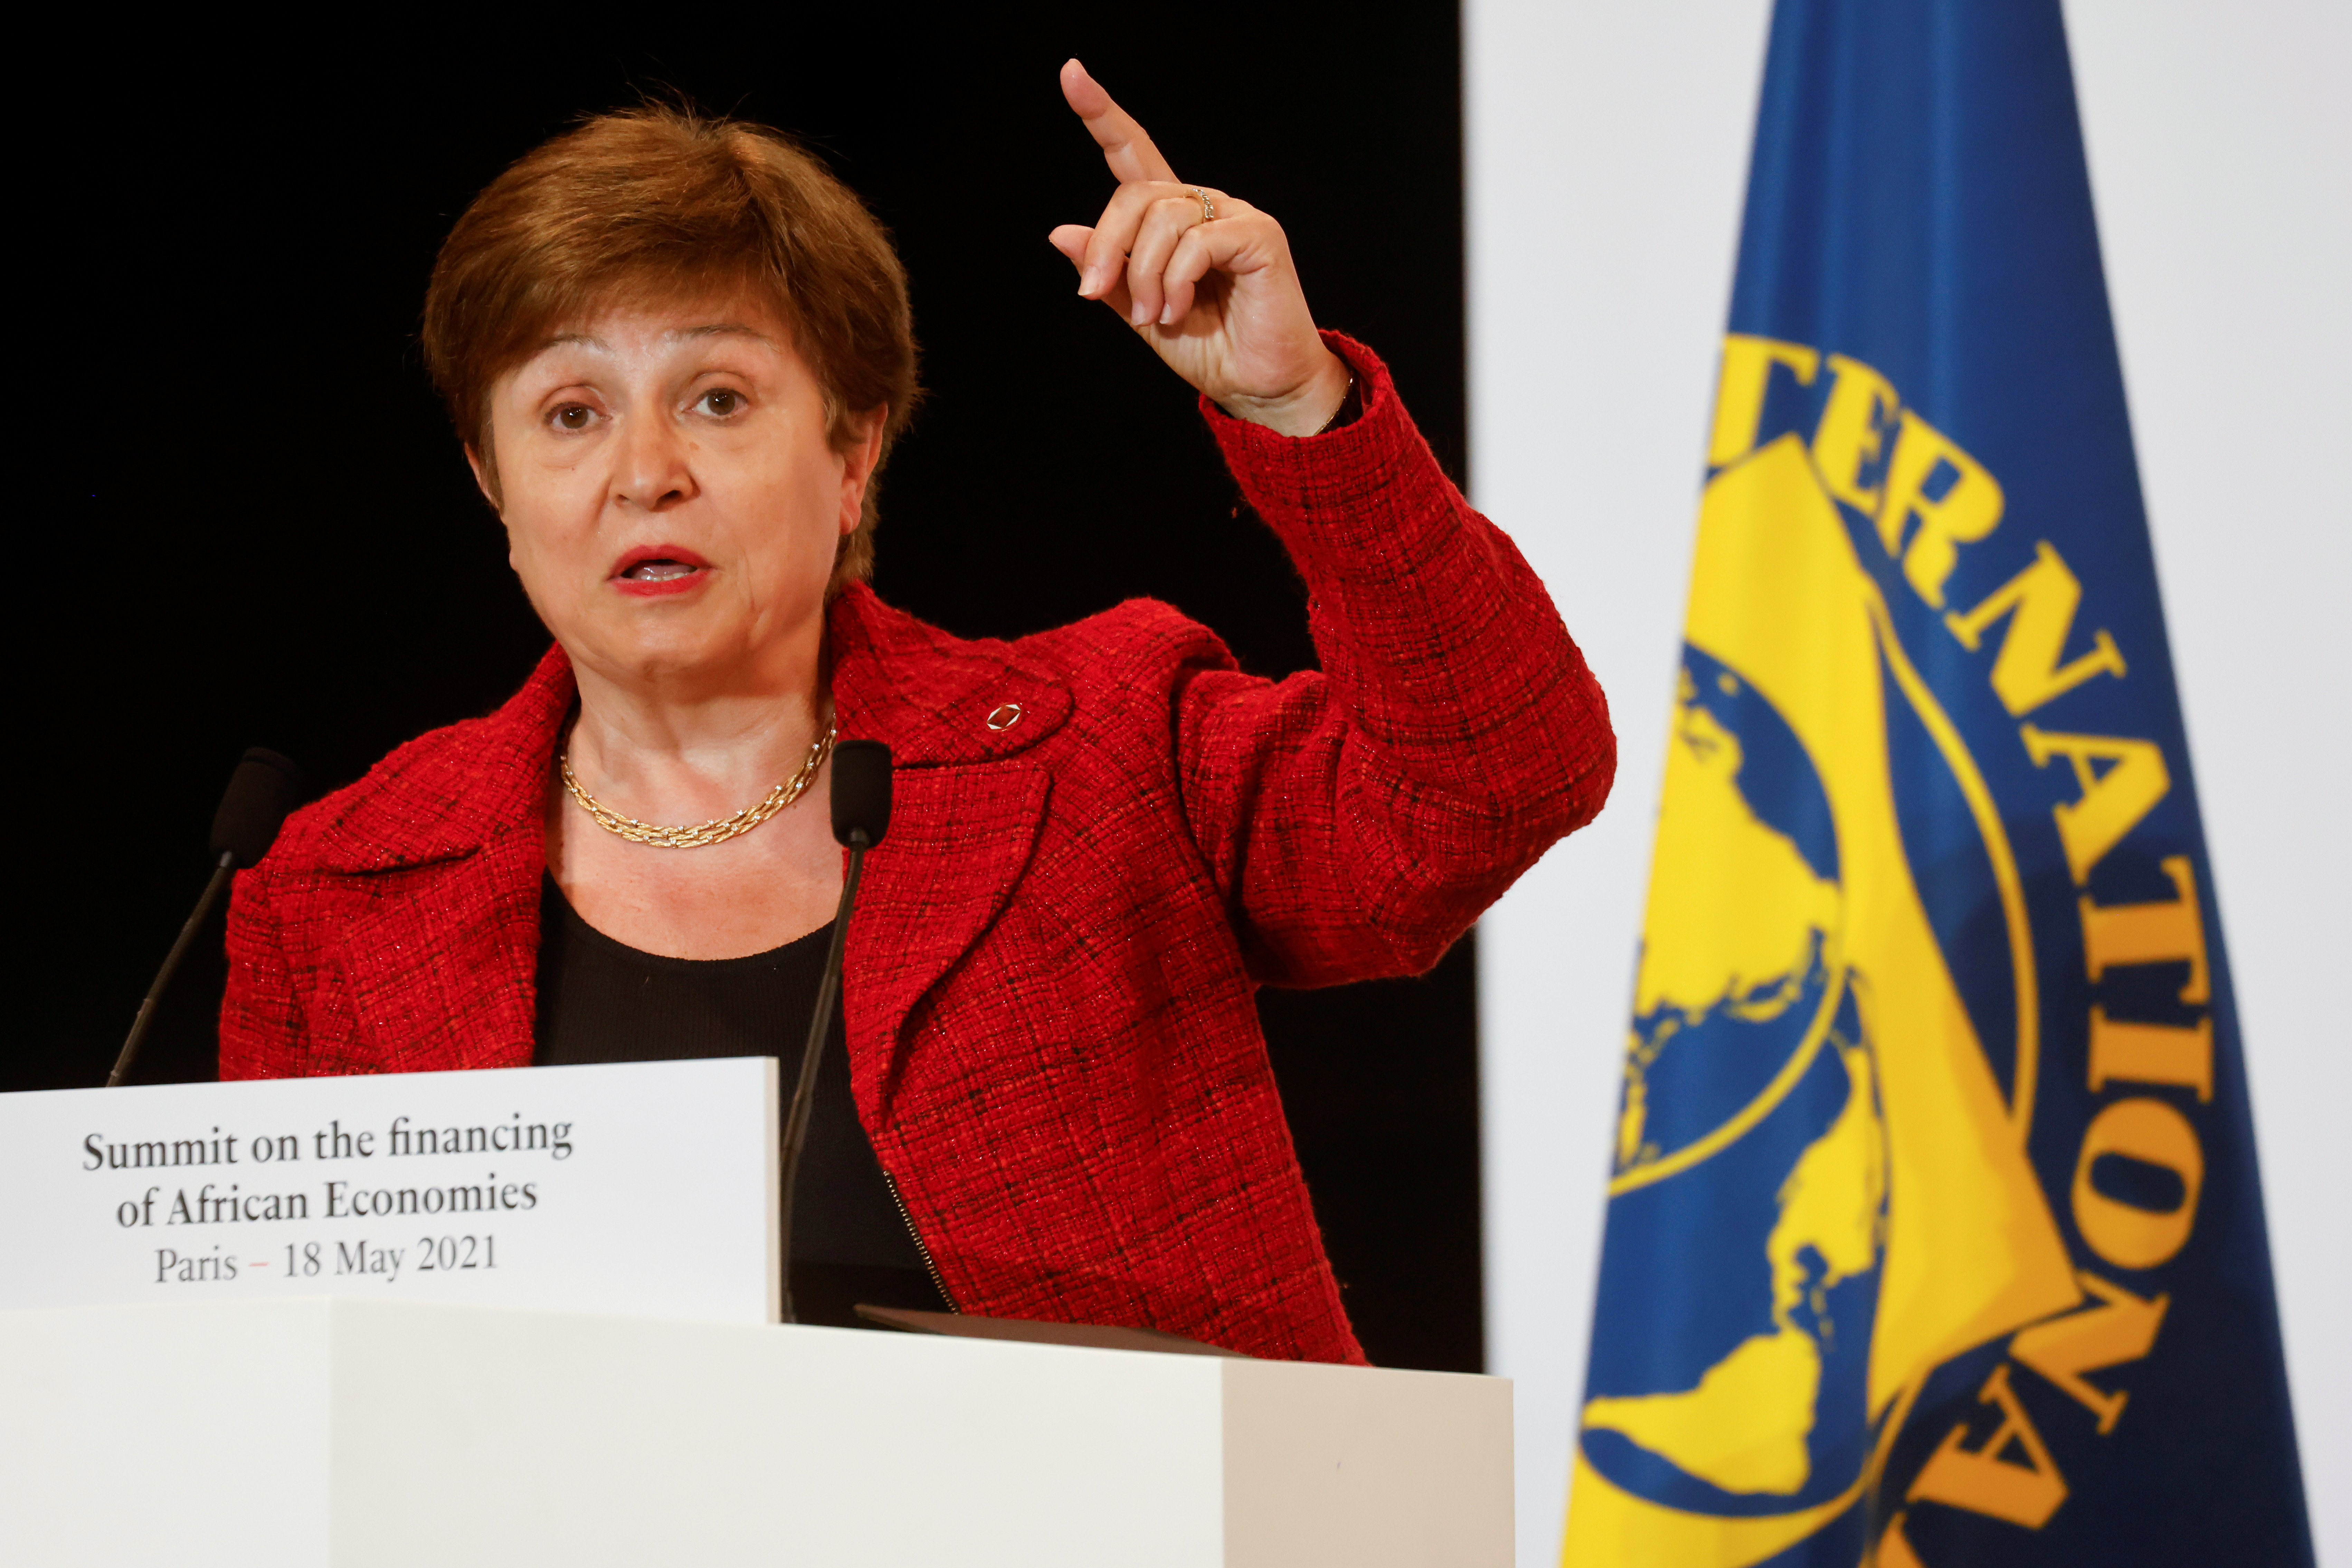 International Monetary Fund Managing Director Kristalina Georgieva speaks during a joint news conference at the end of the Summit on the Financing of African Economies in Paris, France May 18, 2021. Ludovic Marin/Pool via REUTERS